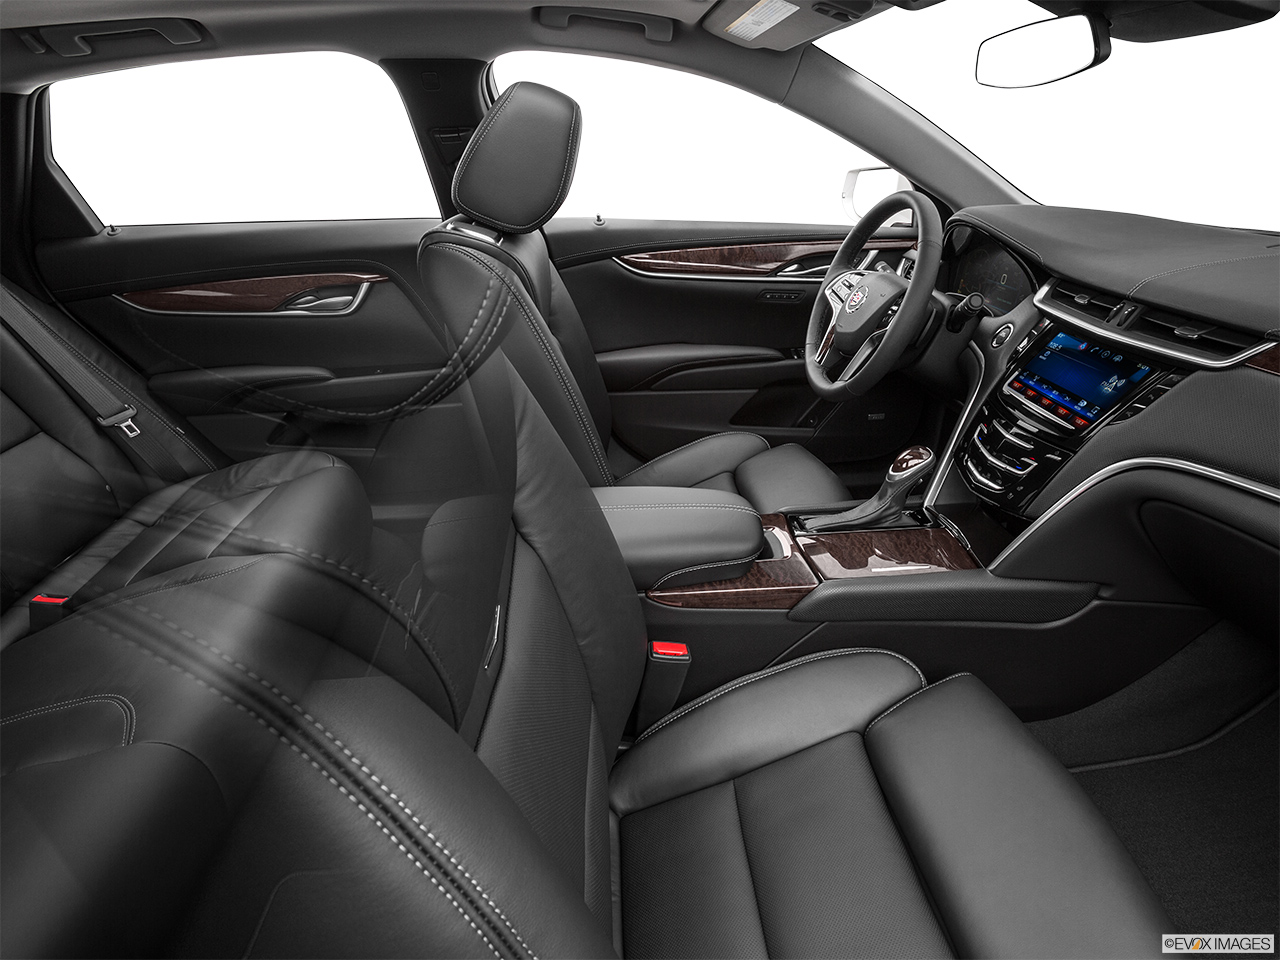 Image result for cadillac xts interior